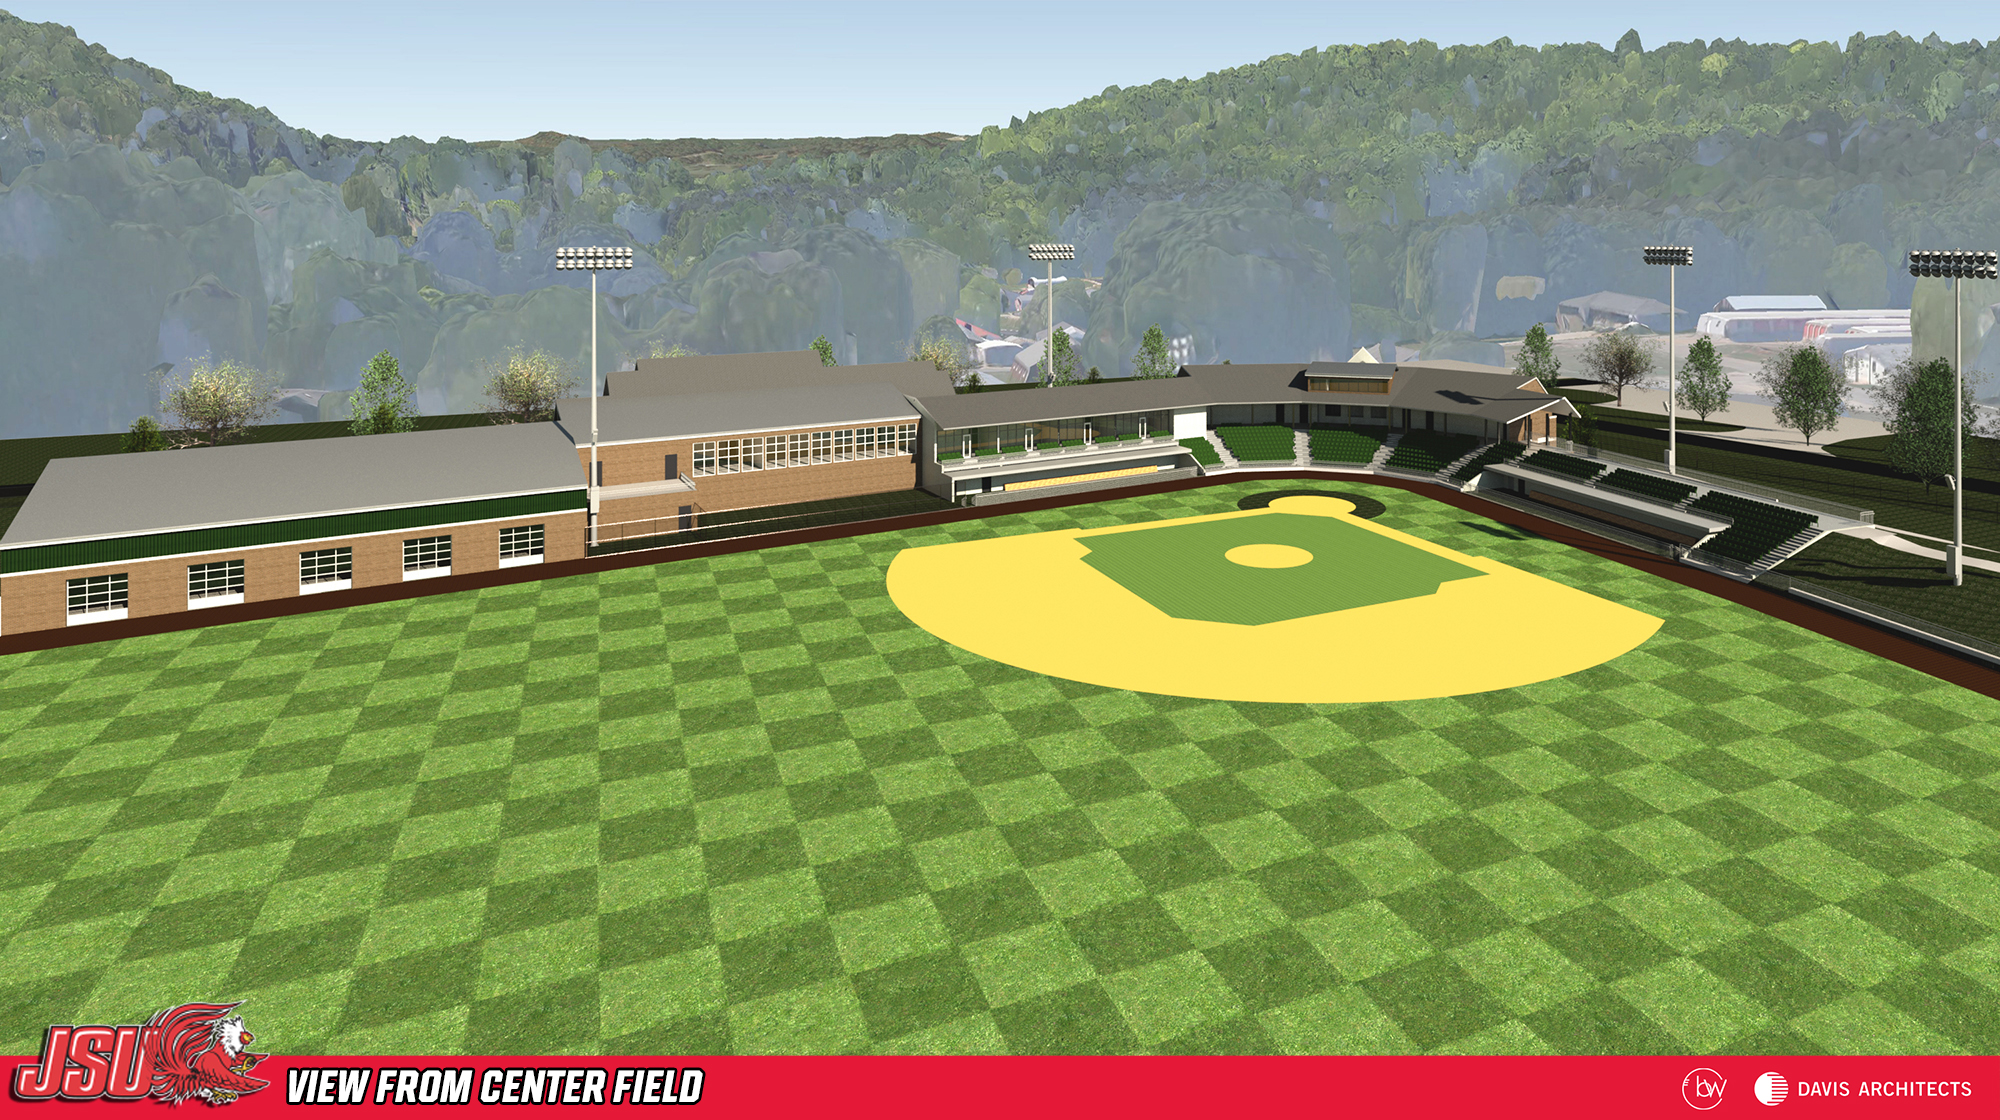 Jsu athletics jsu reveals renderings of new baseball stadium 10538 malvernweather Image collections